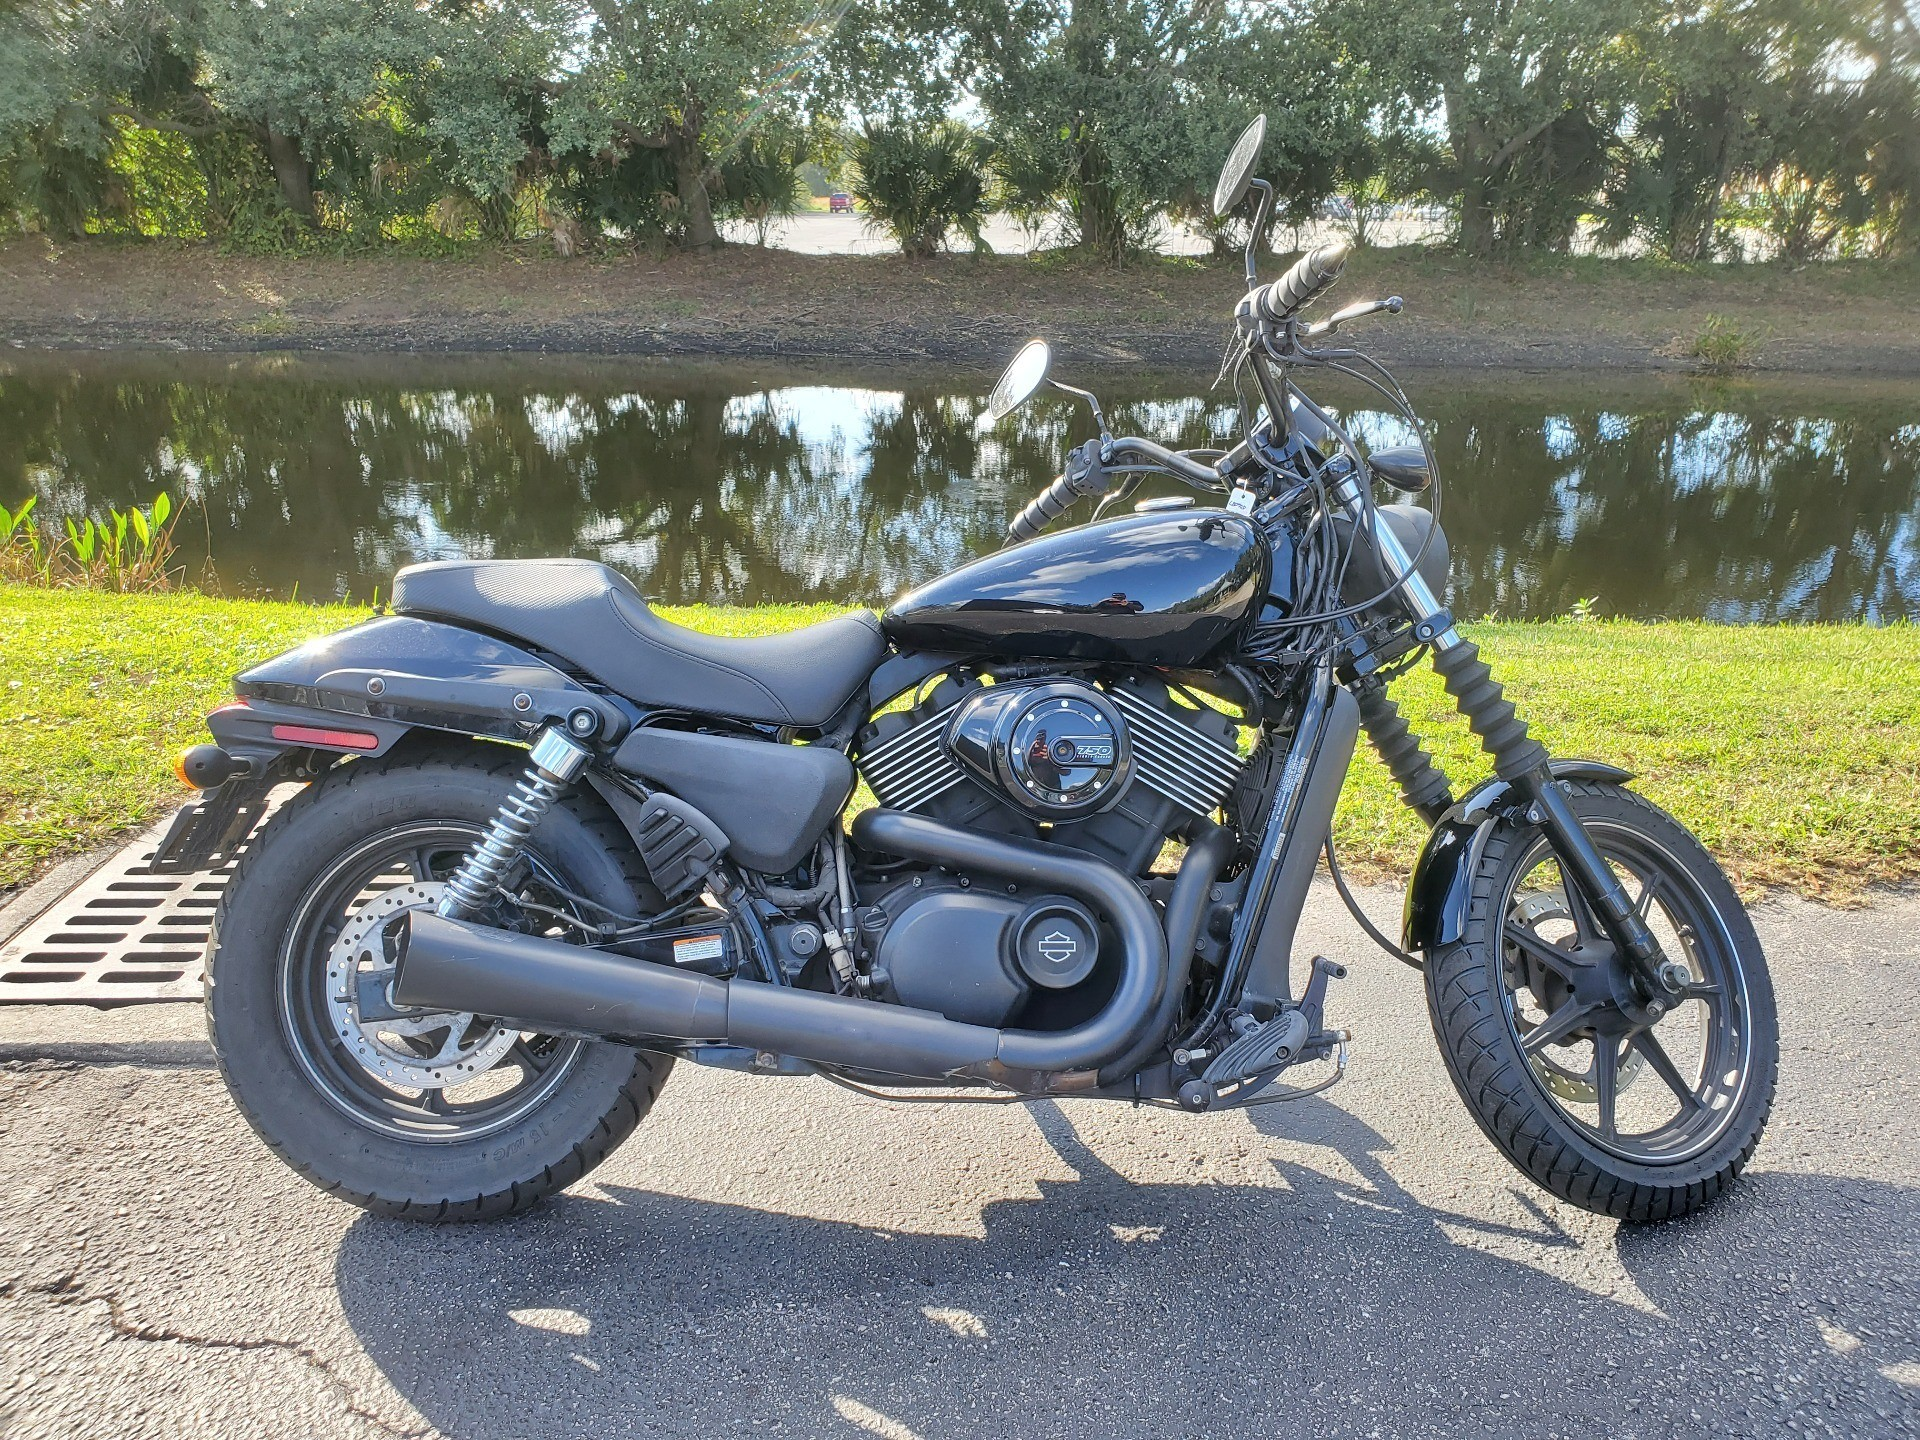 2015 Harley-Davidson Street™ 750 in Sarasota, Florida - Photo 1